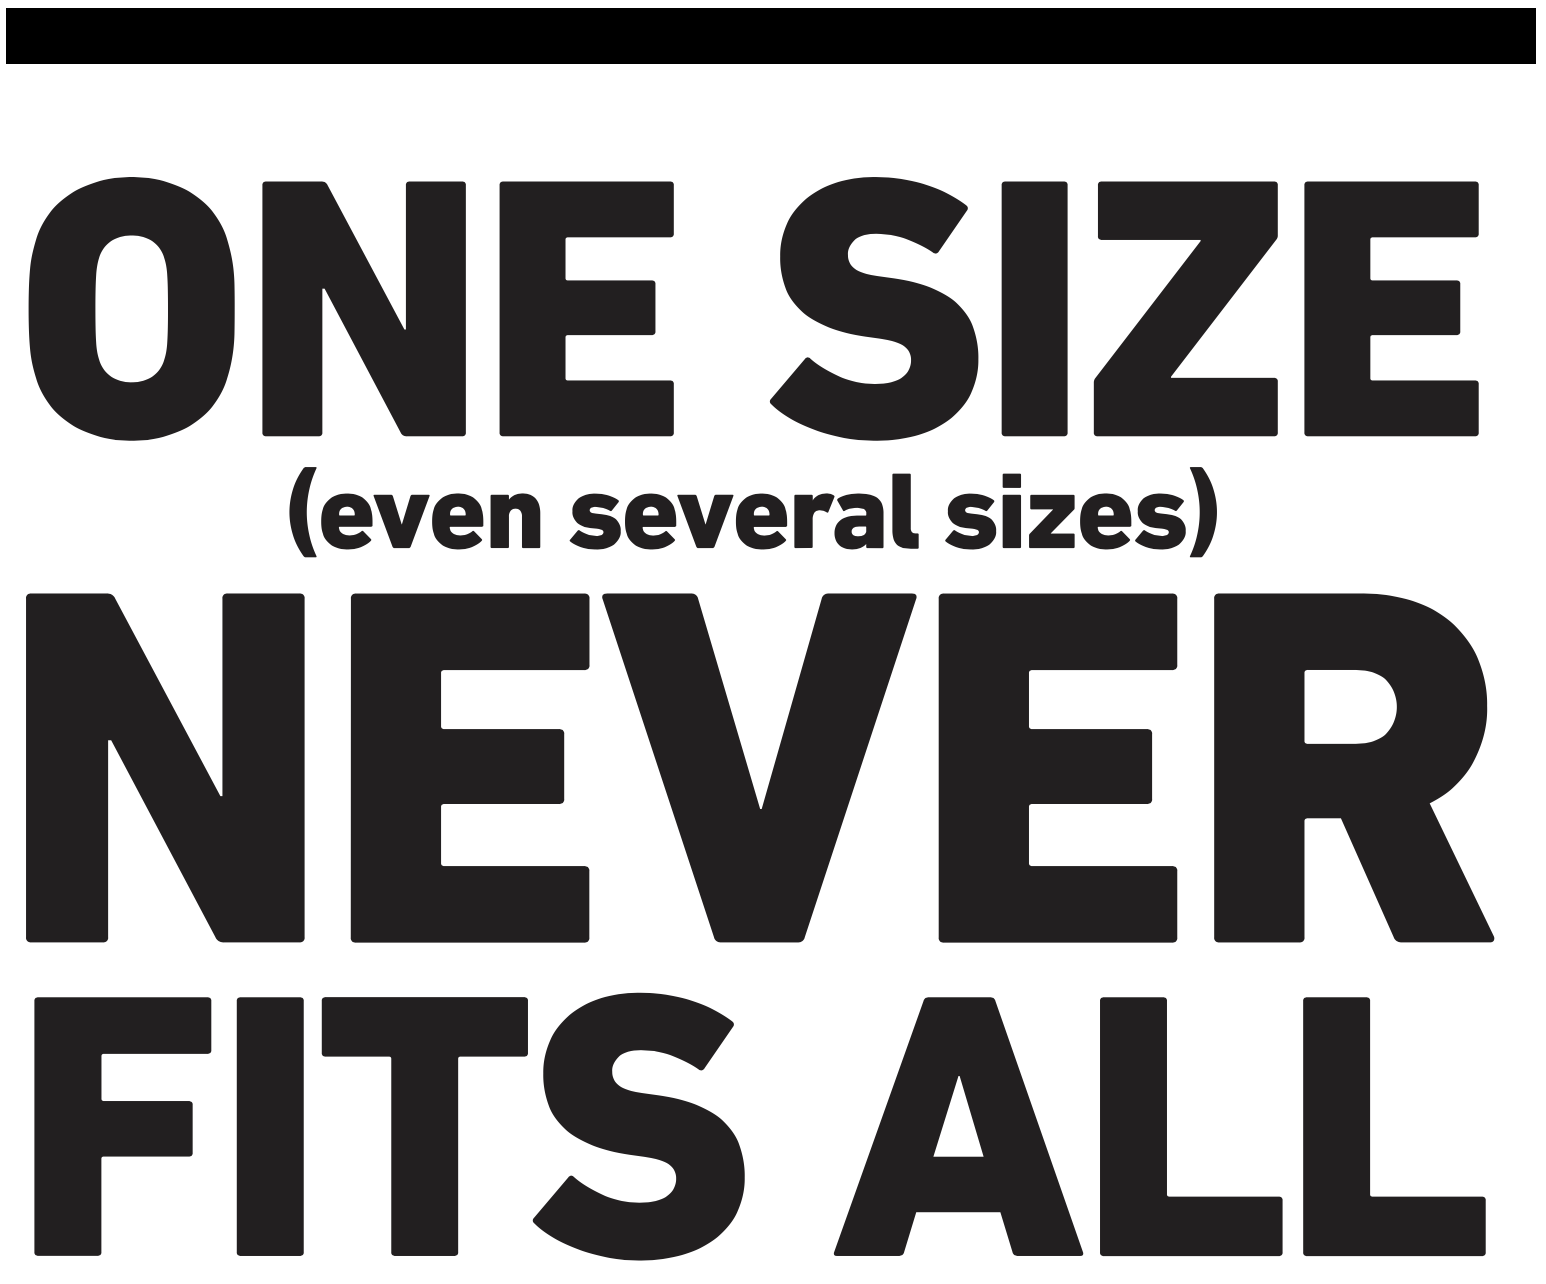 One size (even several sizes) never fits all.